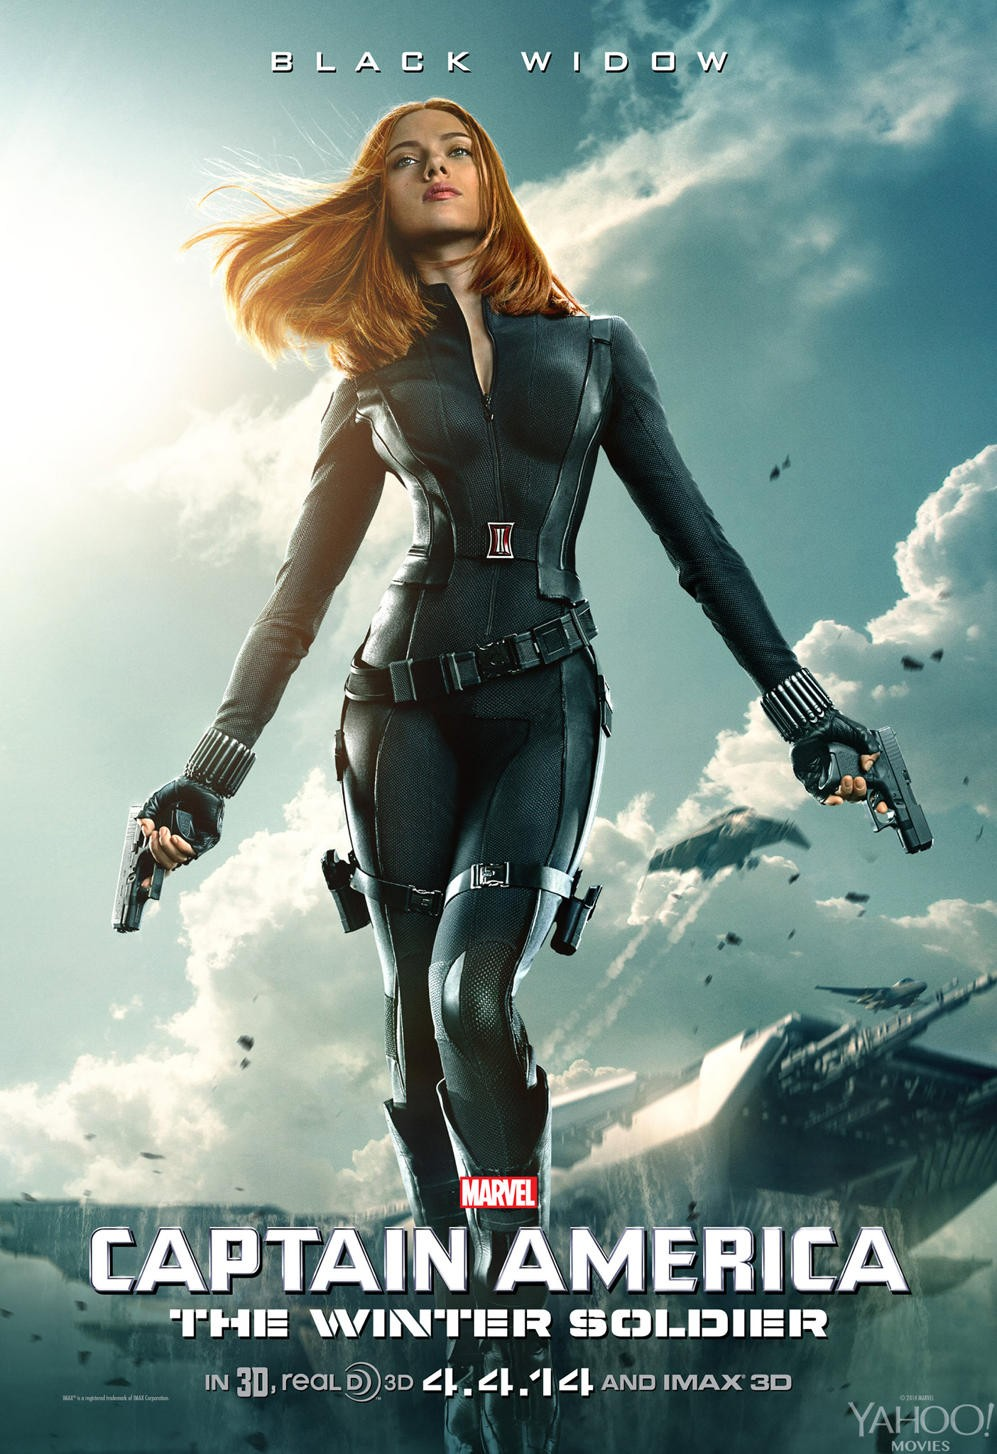 Captain America The Winter Soldier-Official Poster Banner PROMO XLRG-31JANEIRO2014-01